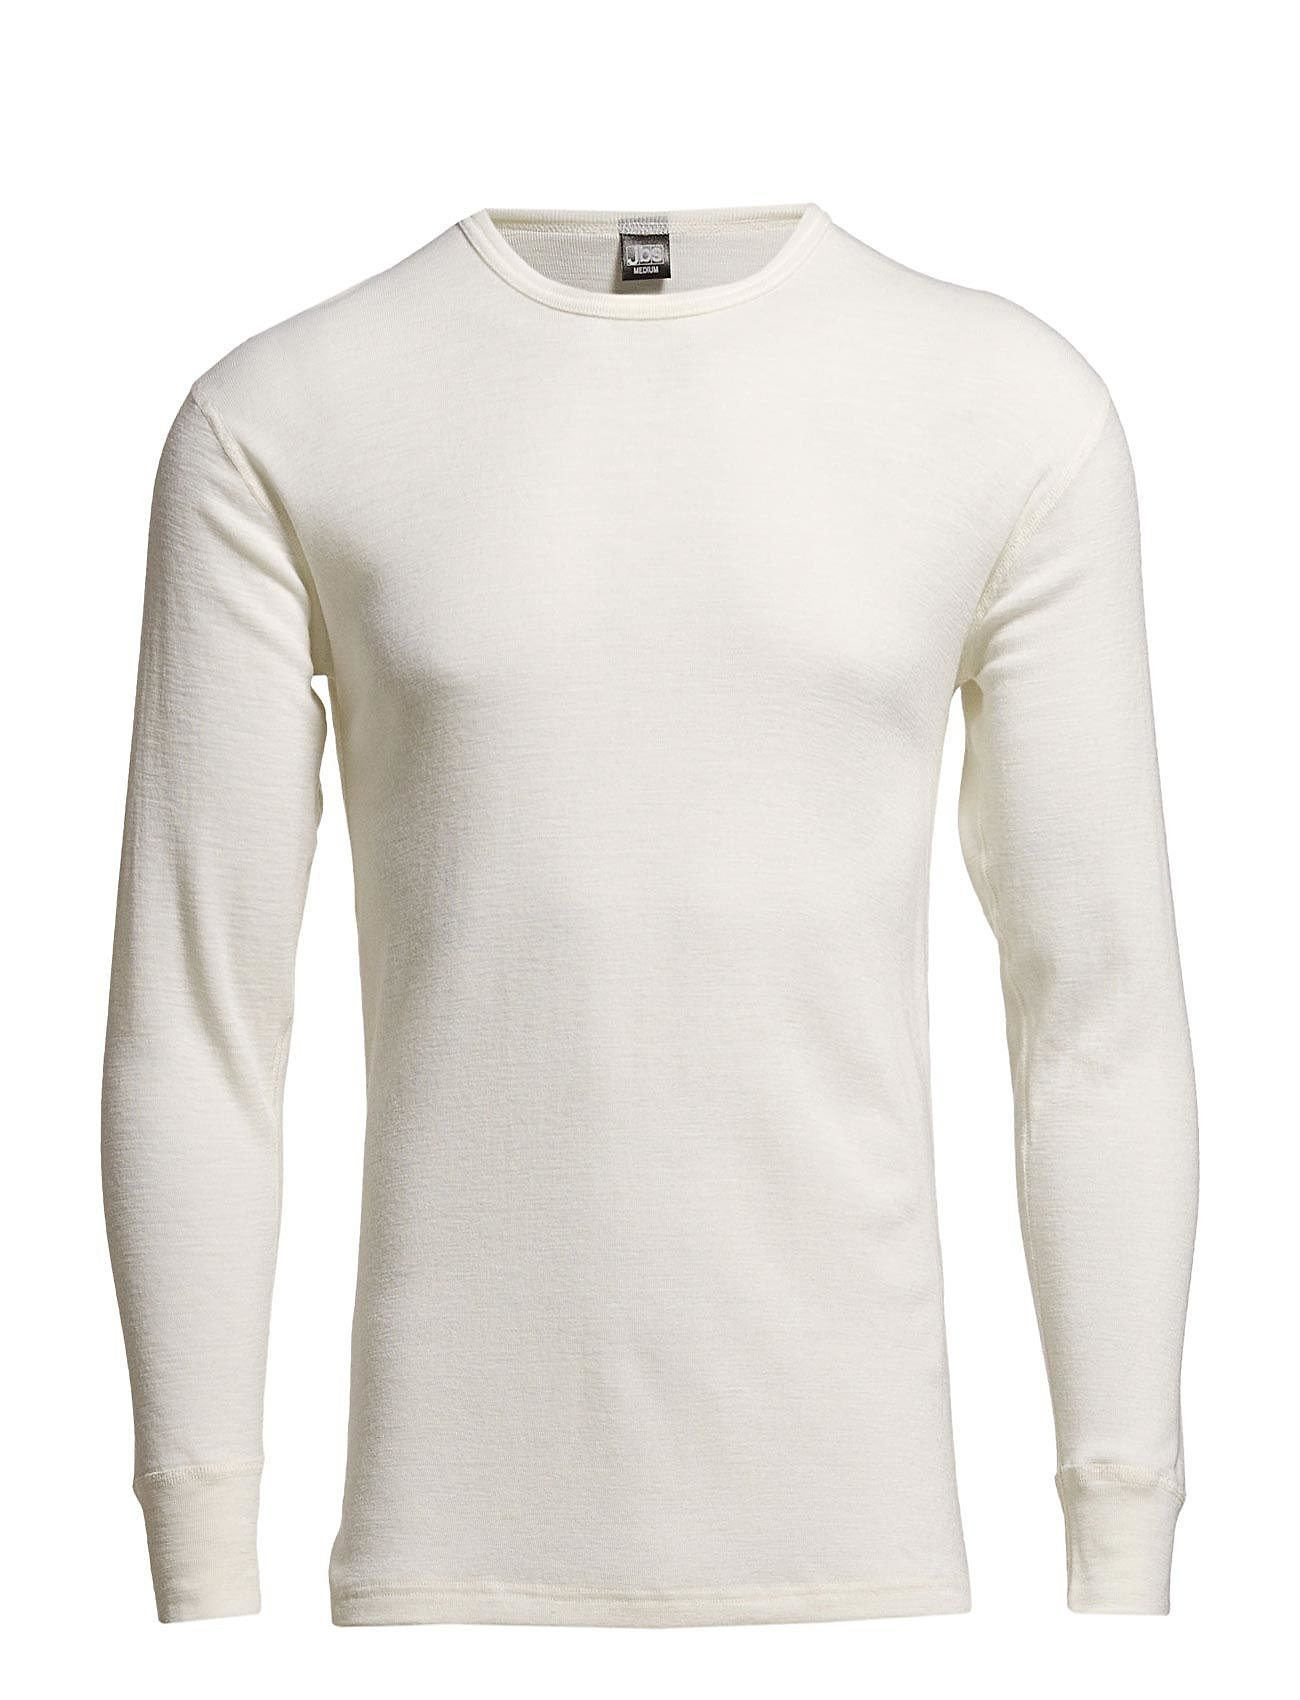 JBS JBS, t-shirt long sleeve - WHITE